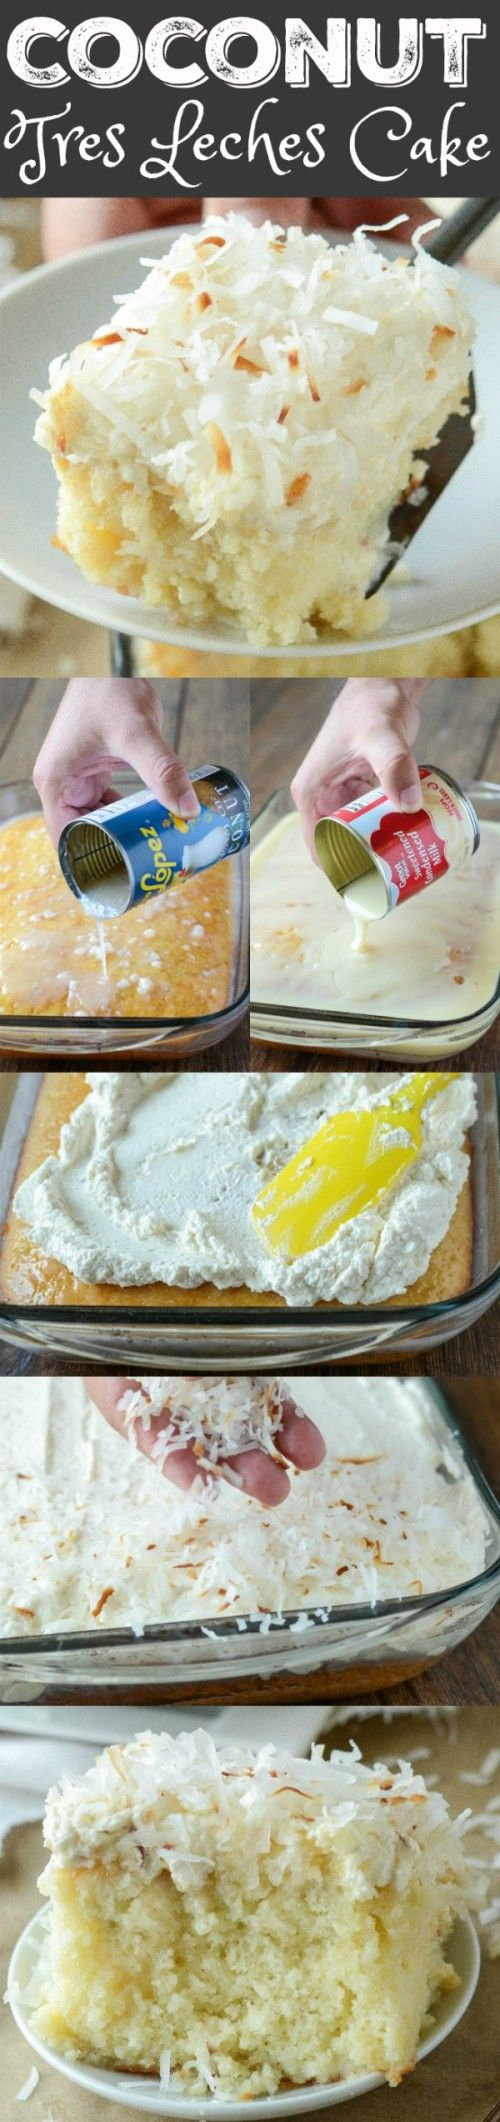 Coconut Tres Leches Cake - my favorite way to dress up a boxed cake mix!